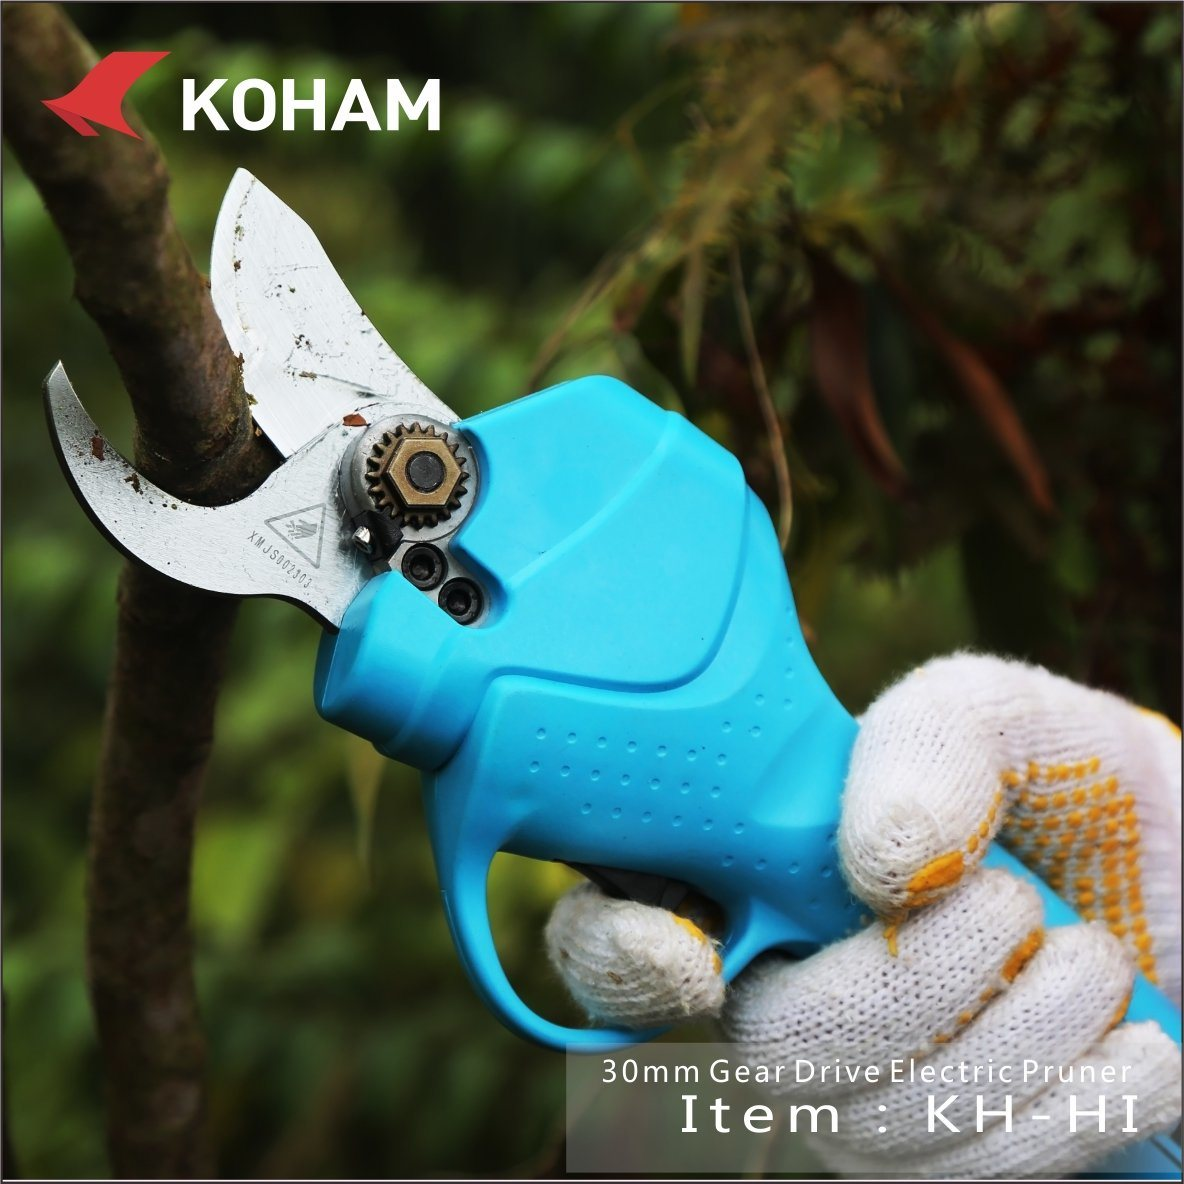 Koham Tools Plum Tree Branches Cutting Battery Secateurs pictures & photos